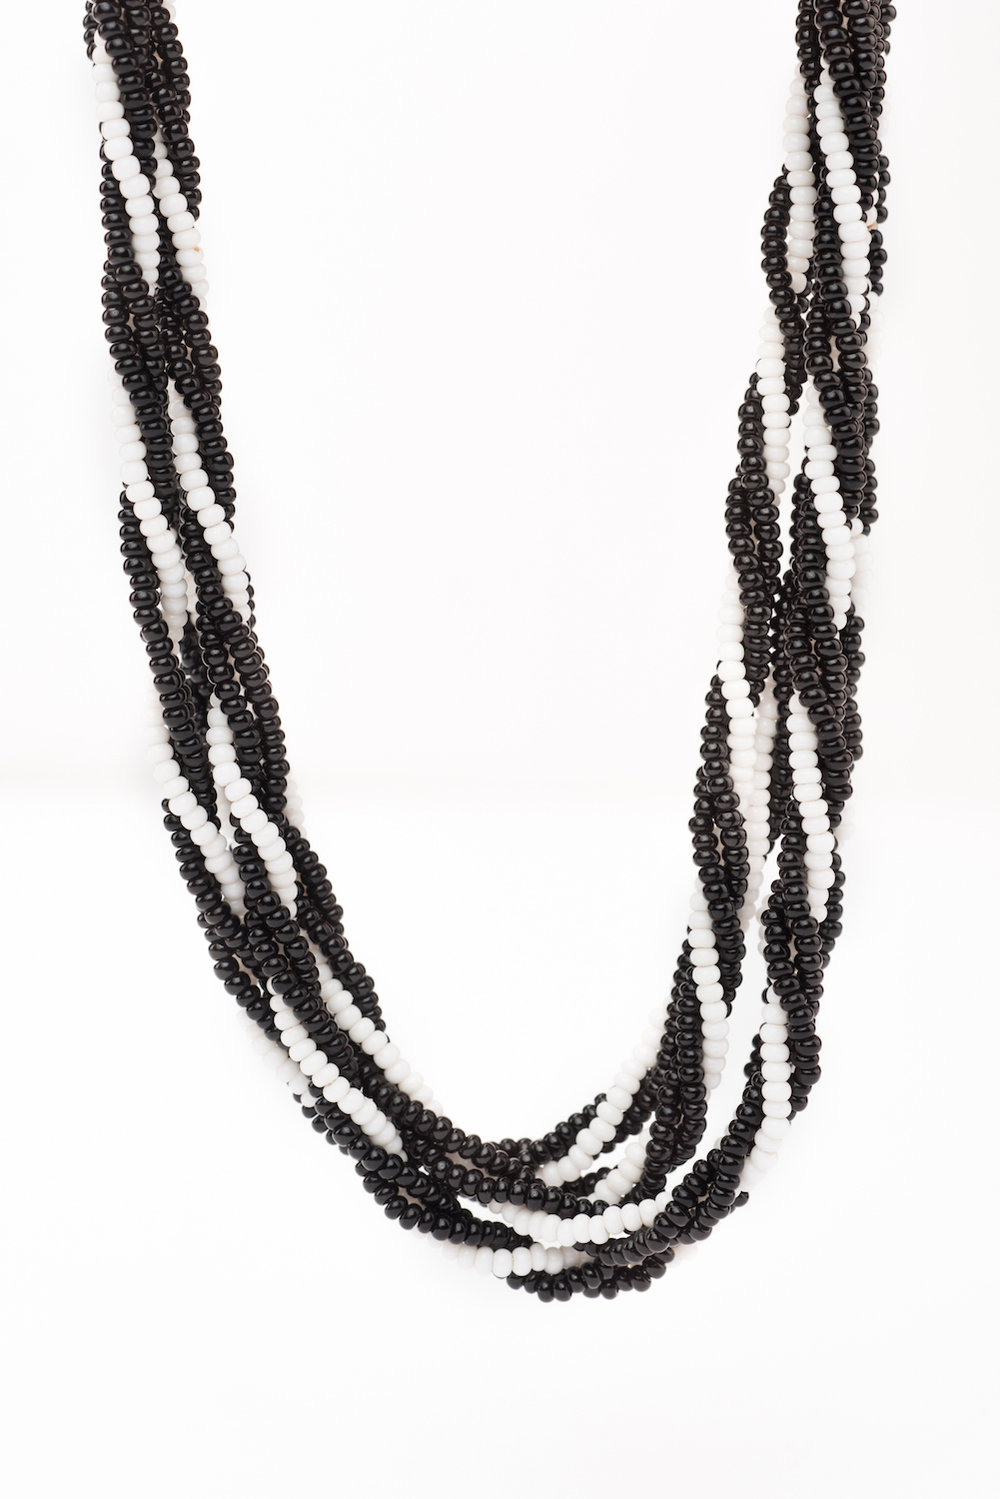 Twisted Necklace (Trad)-BW2004 (8).jpg